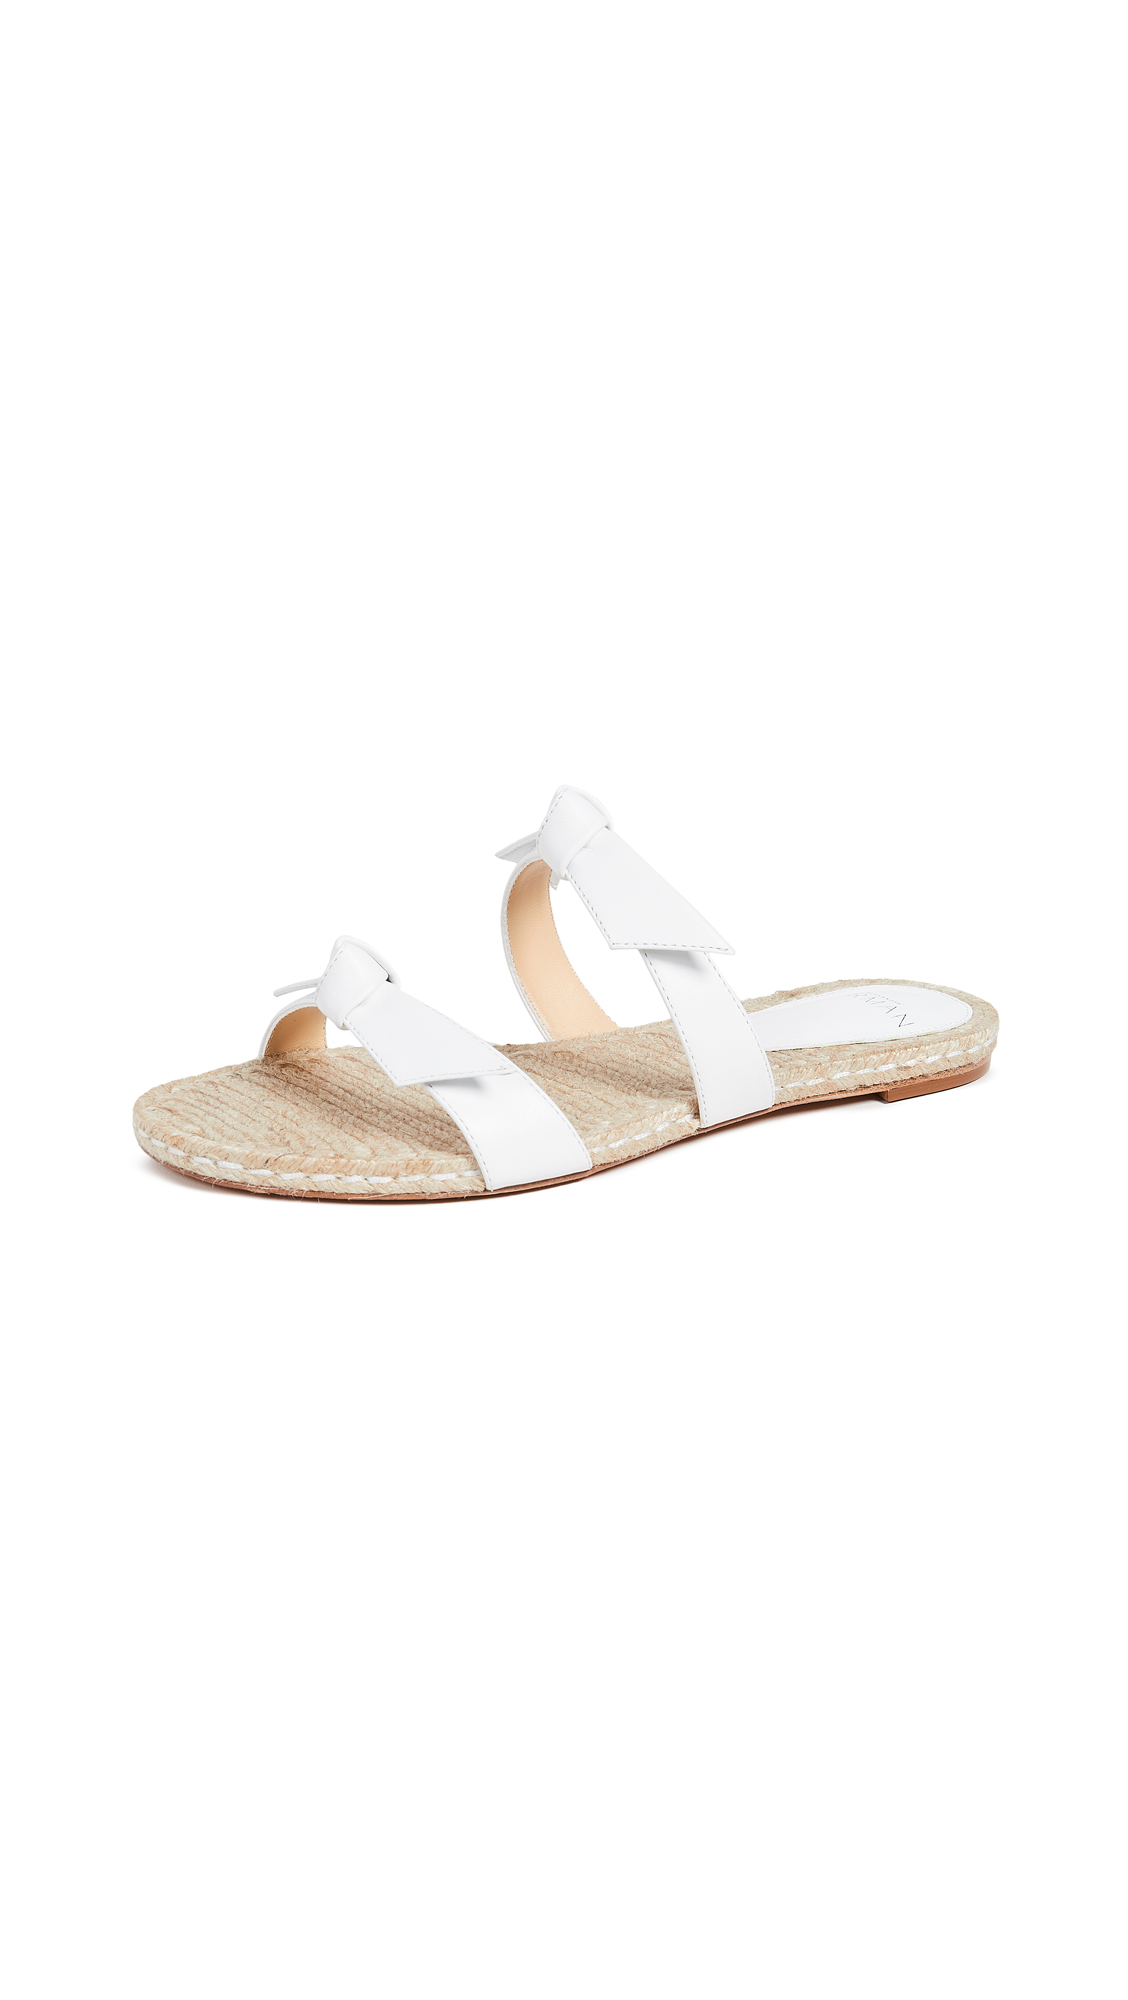 Alexandre Birman Clarita Braided Flat Sandals - White/Natural